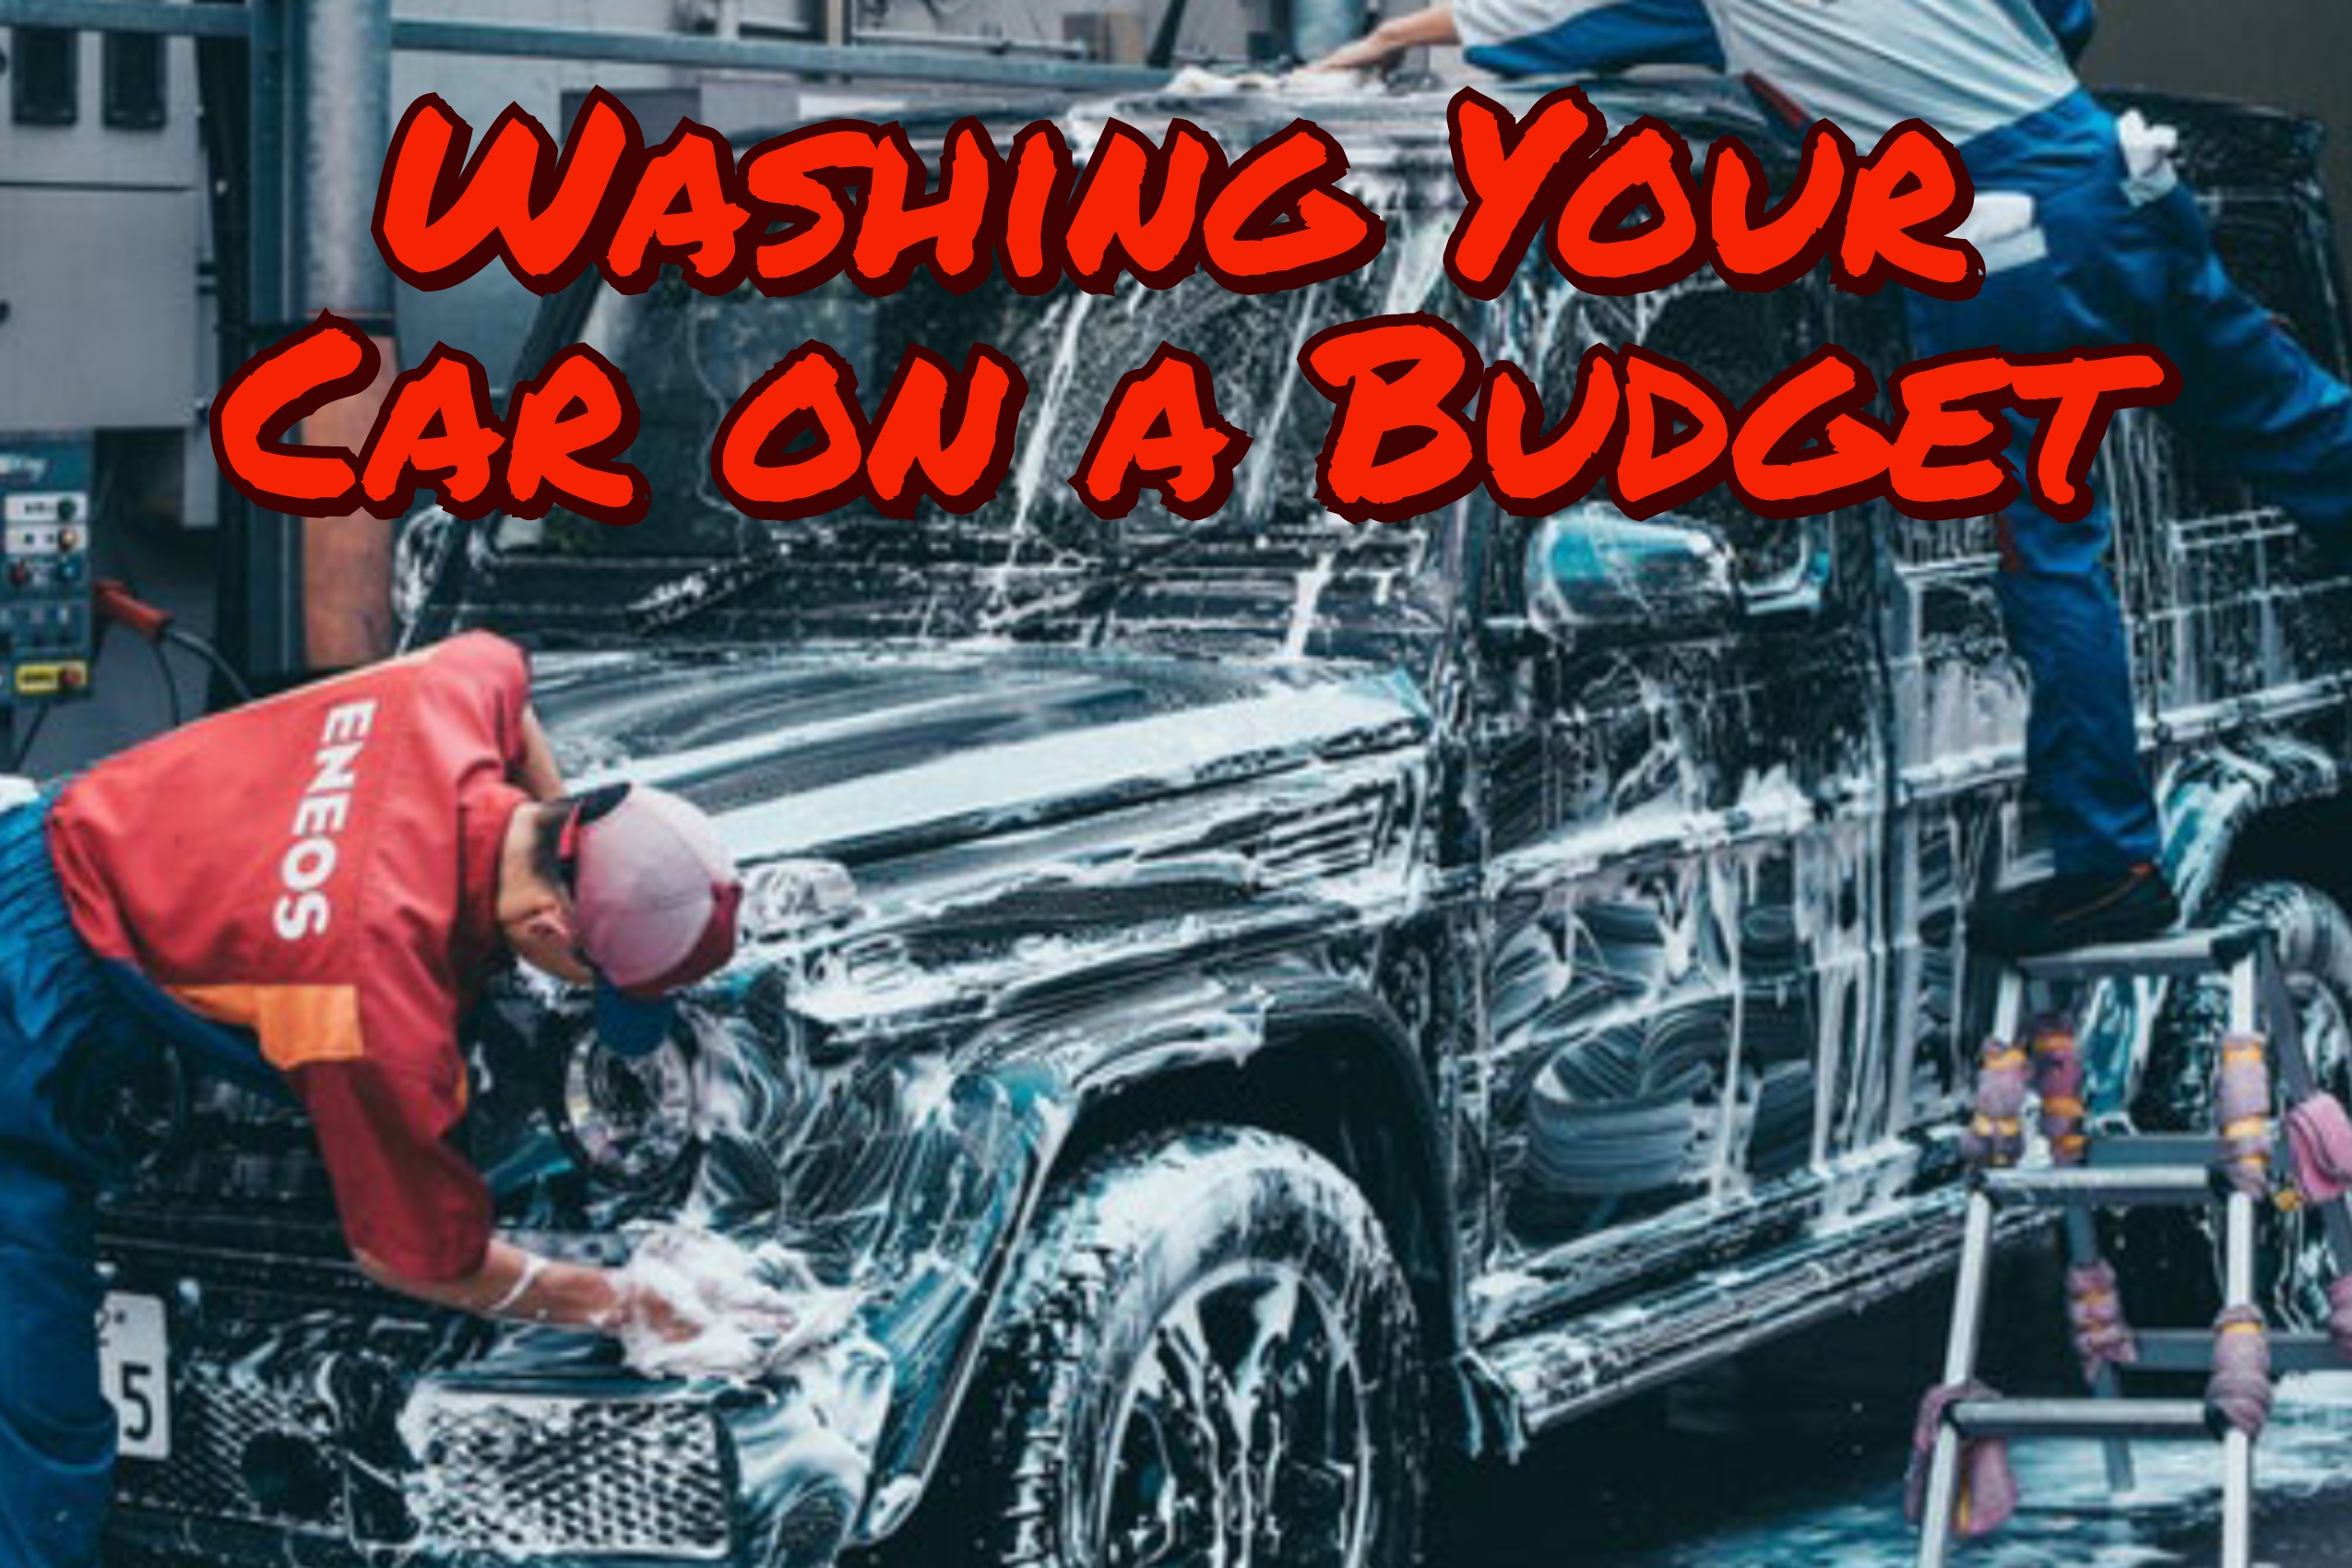 wash car on budget